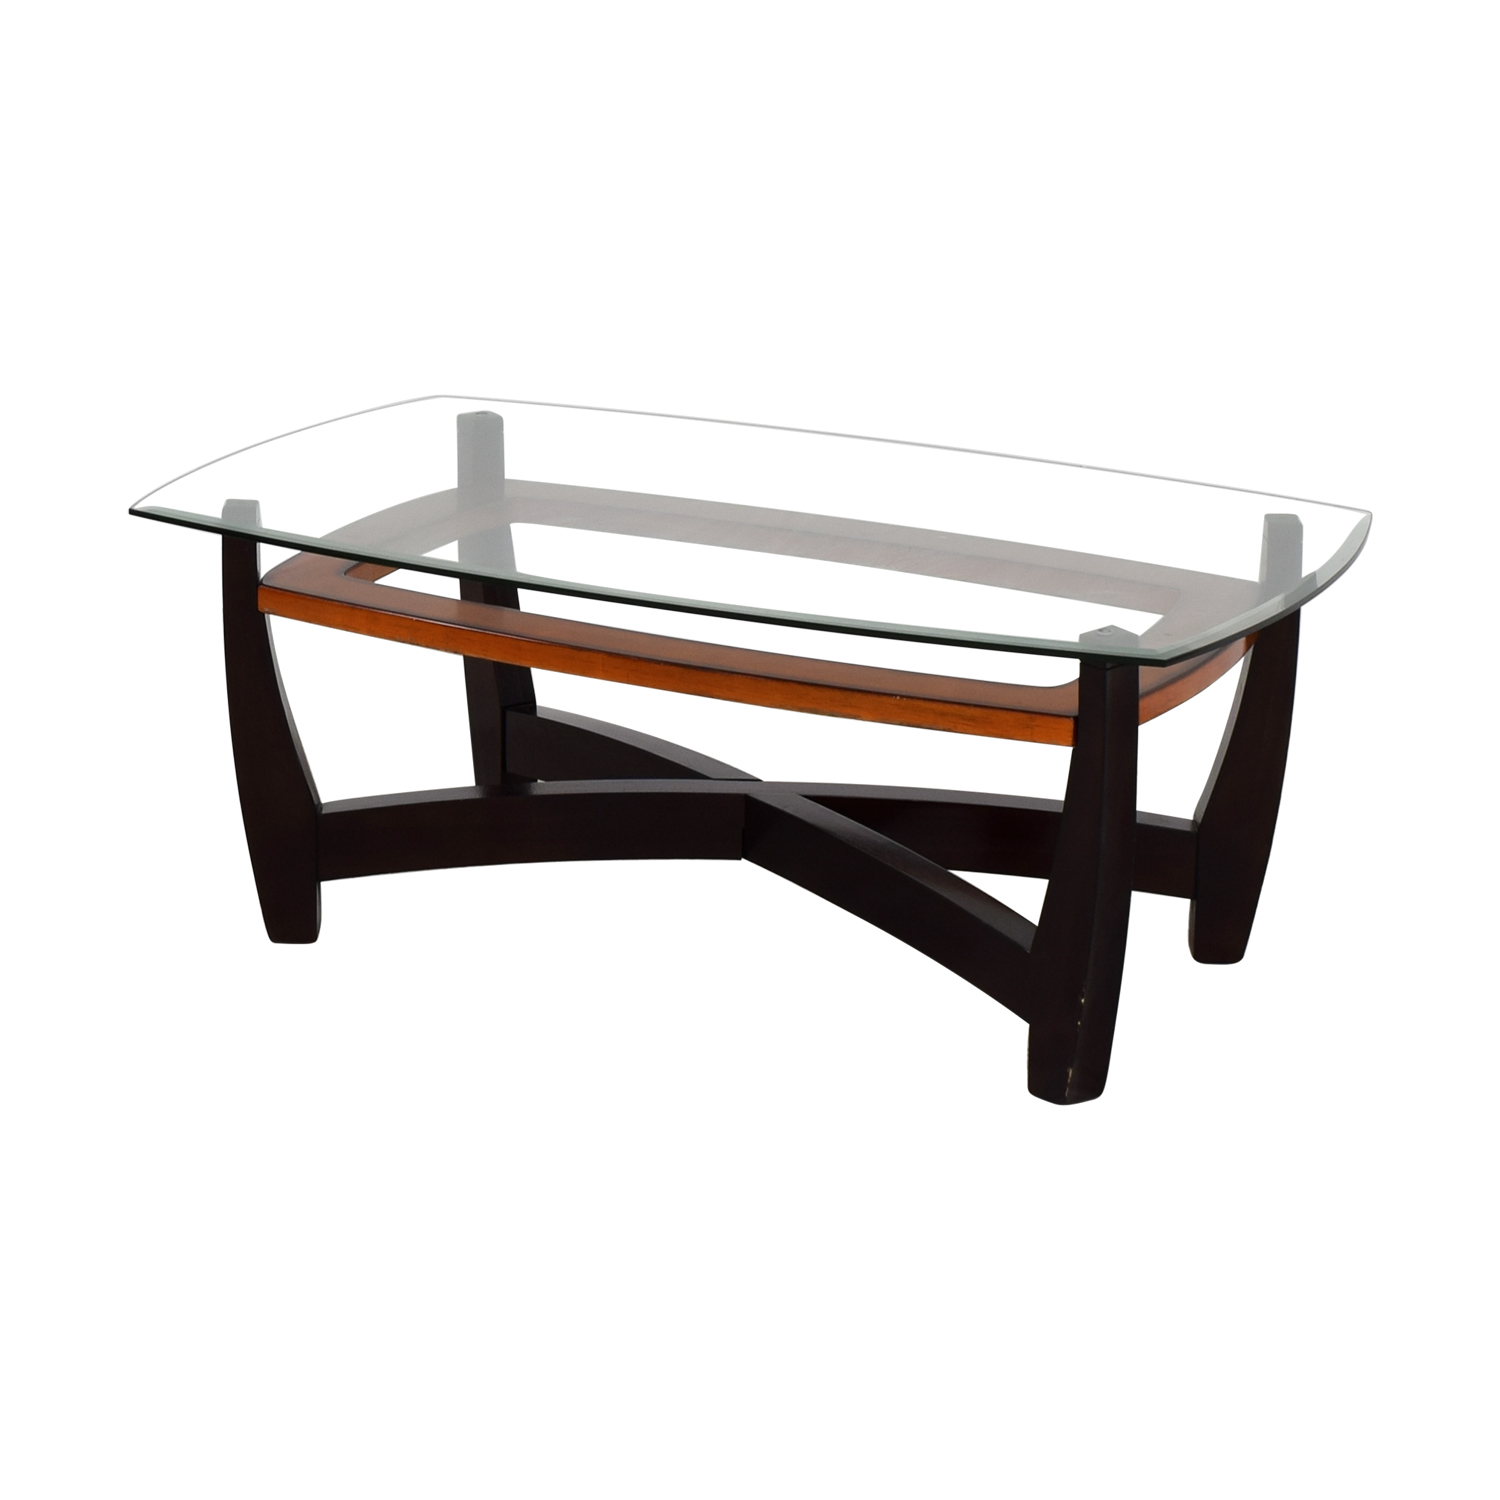 75 Off Raymour Flanigan Raymour Flanigan Rectangular Glass Top And Wood Coffee Table Tables